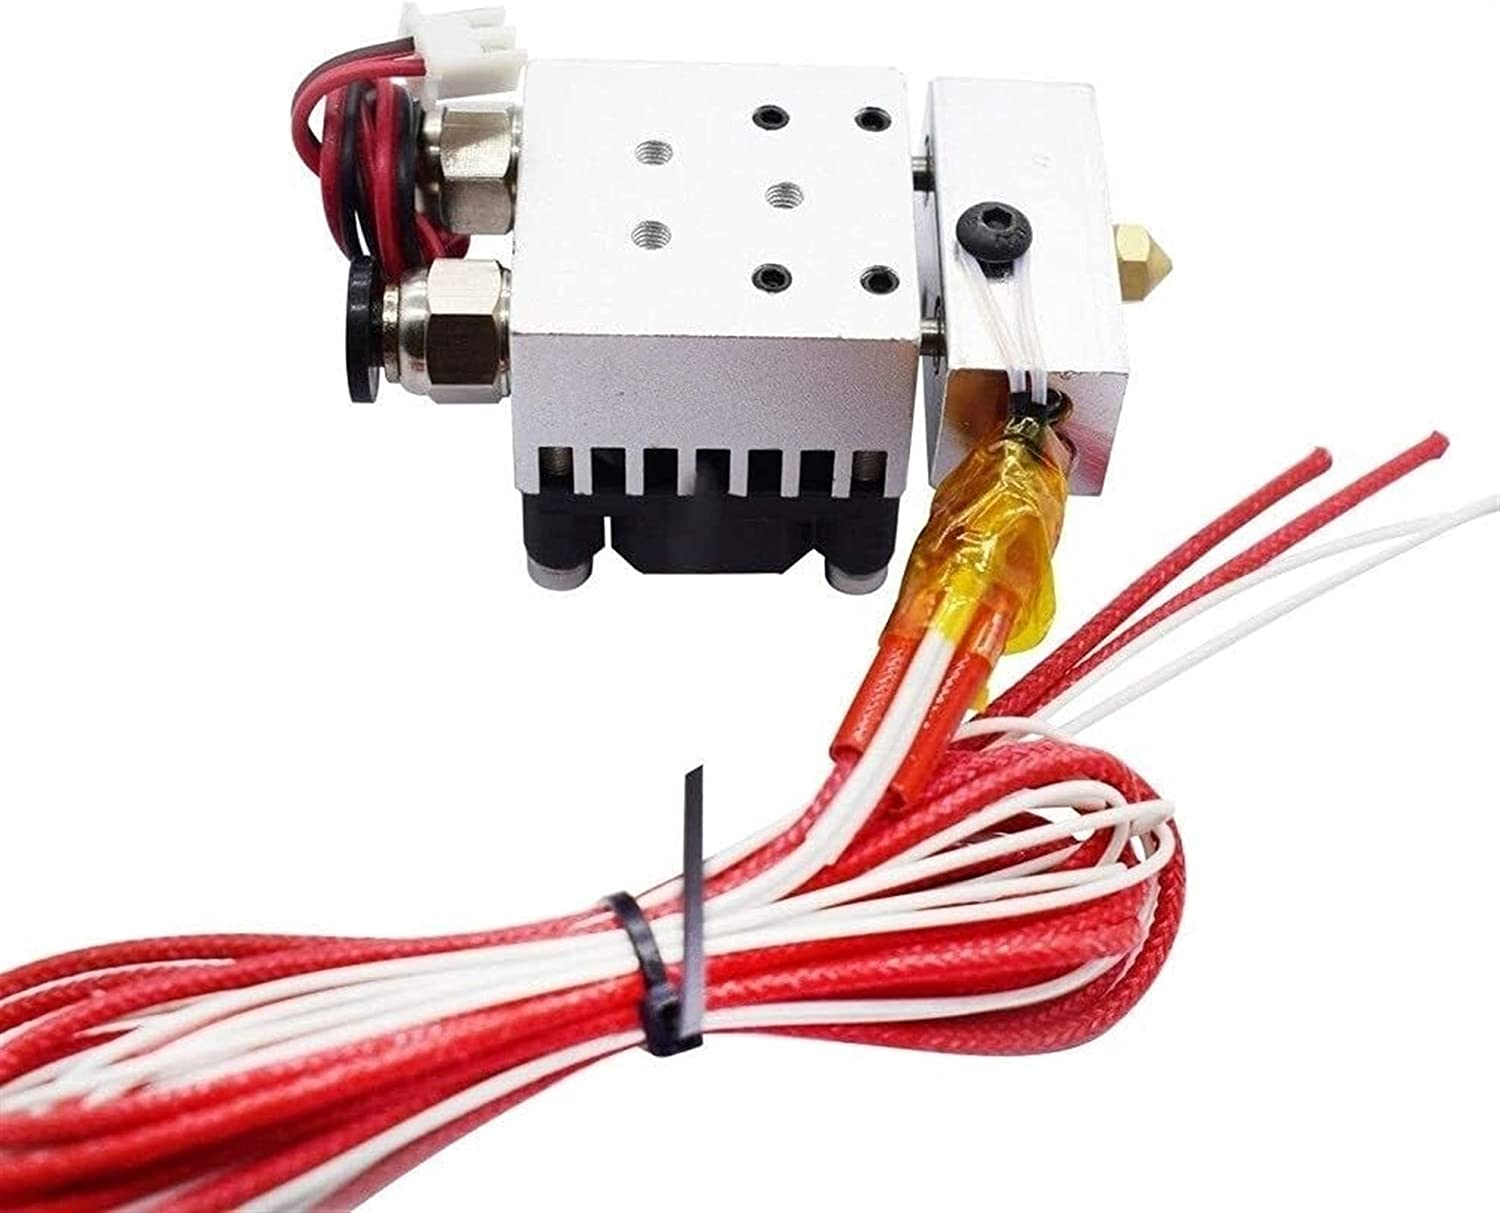 satukeji 3D Free Shipping Cheap Bargain Gift Printer Parts Special price for a limited time Hot End 2 Kit Hotend D Out in J-Head 1